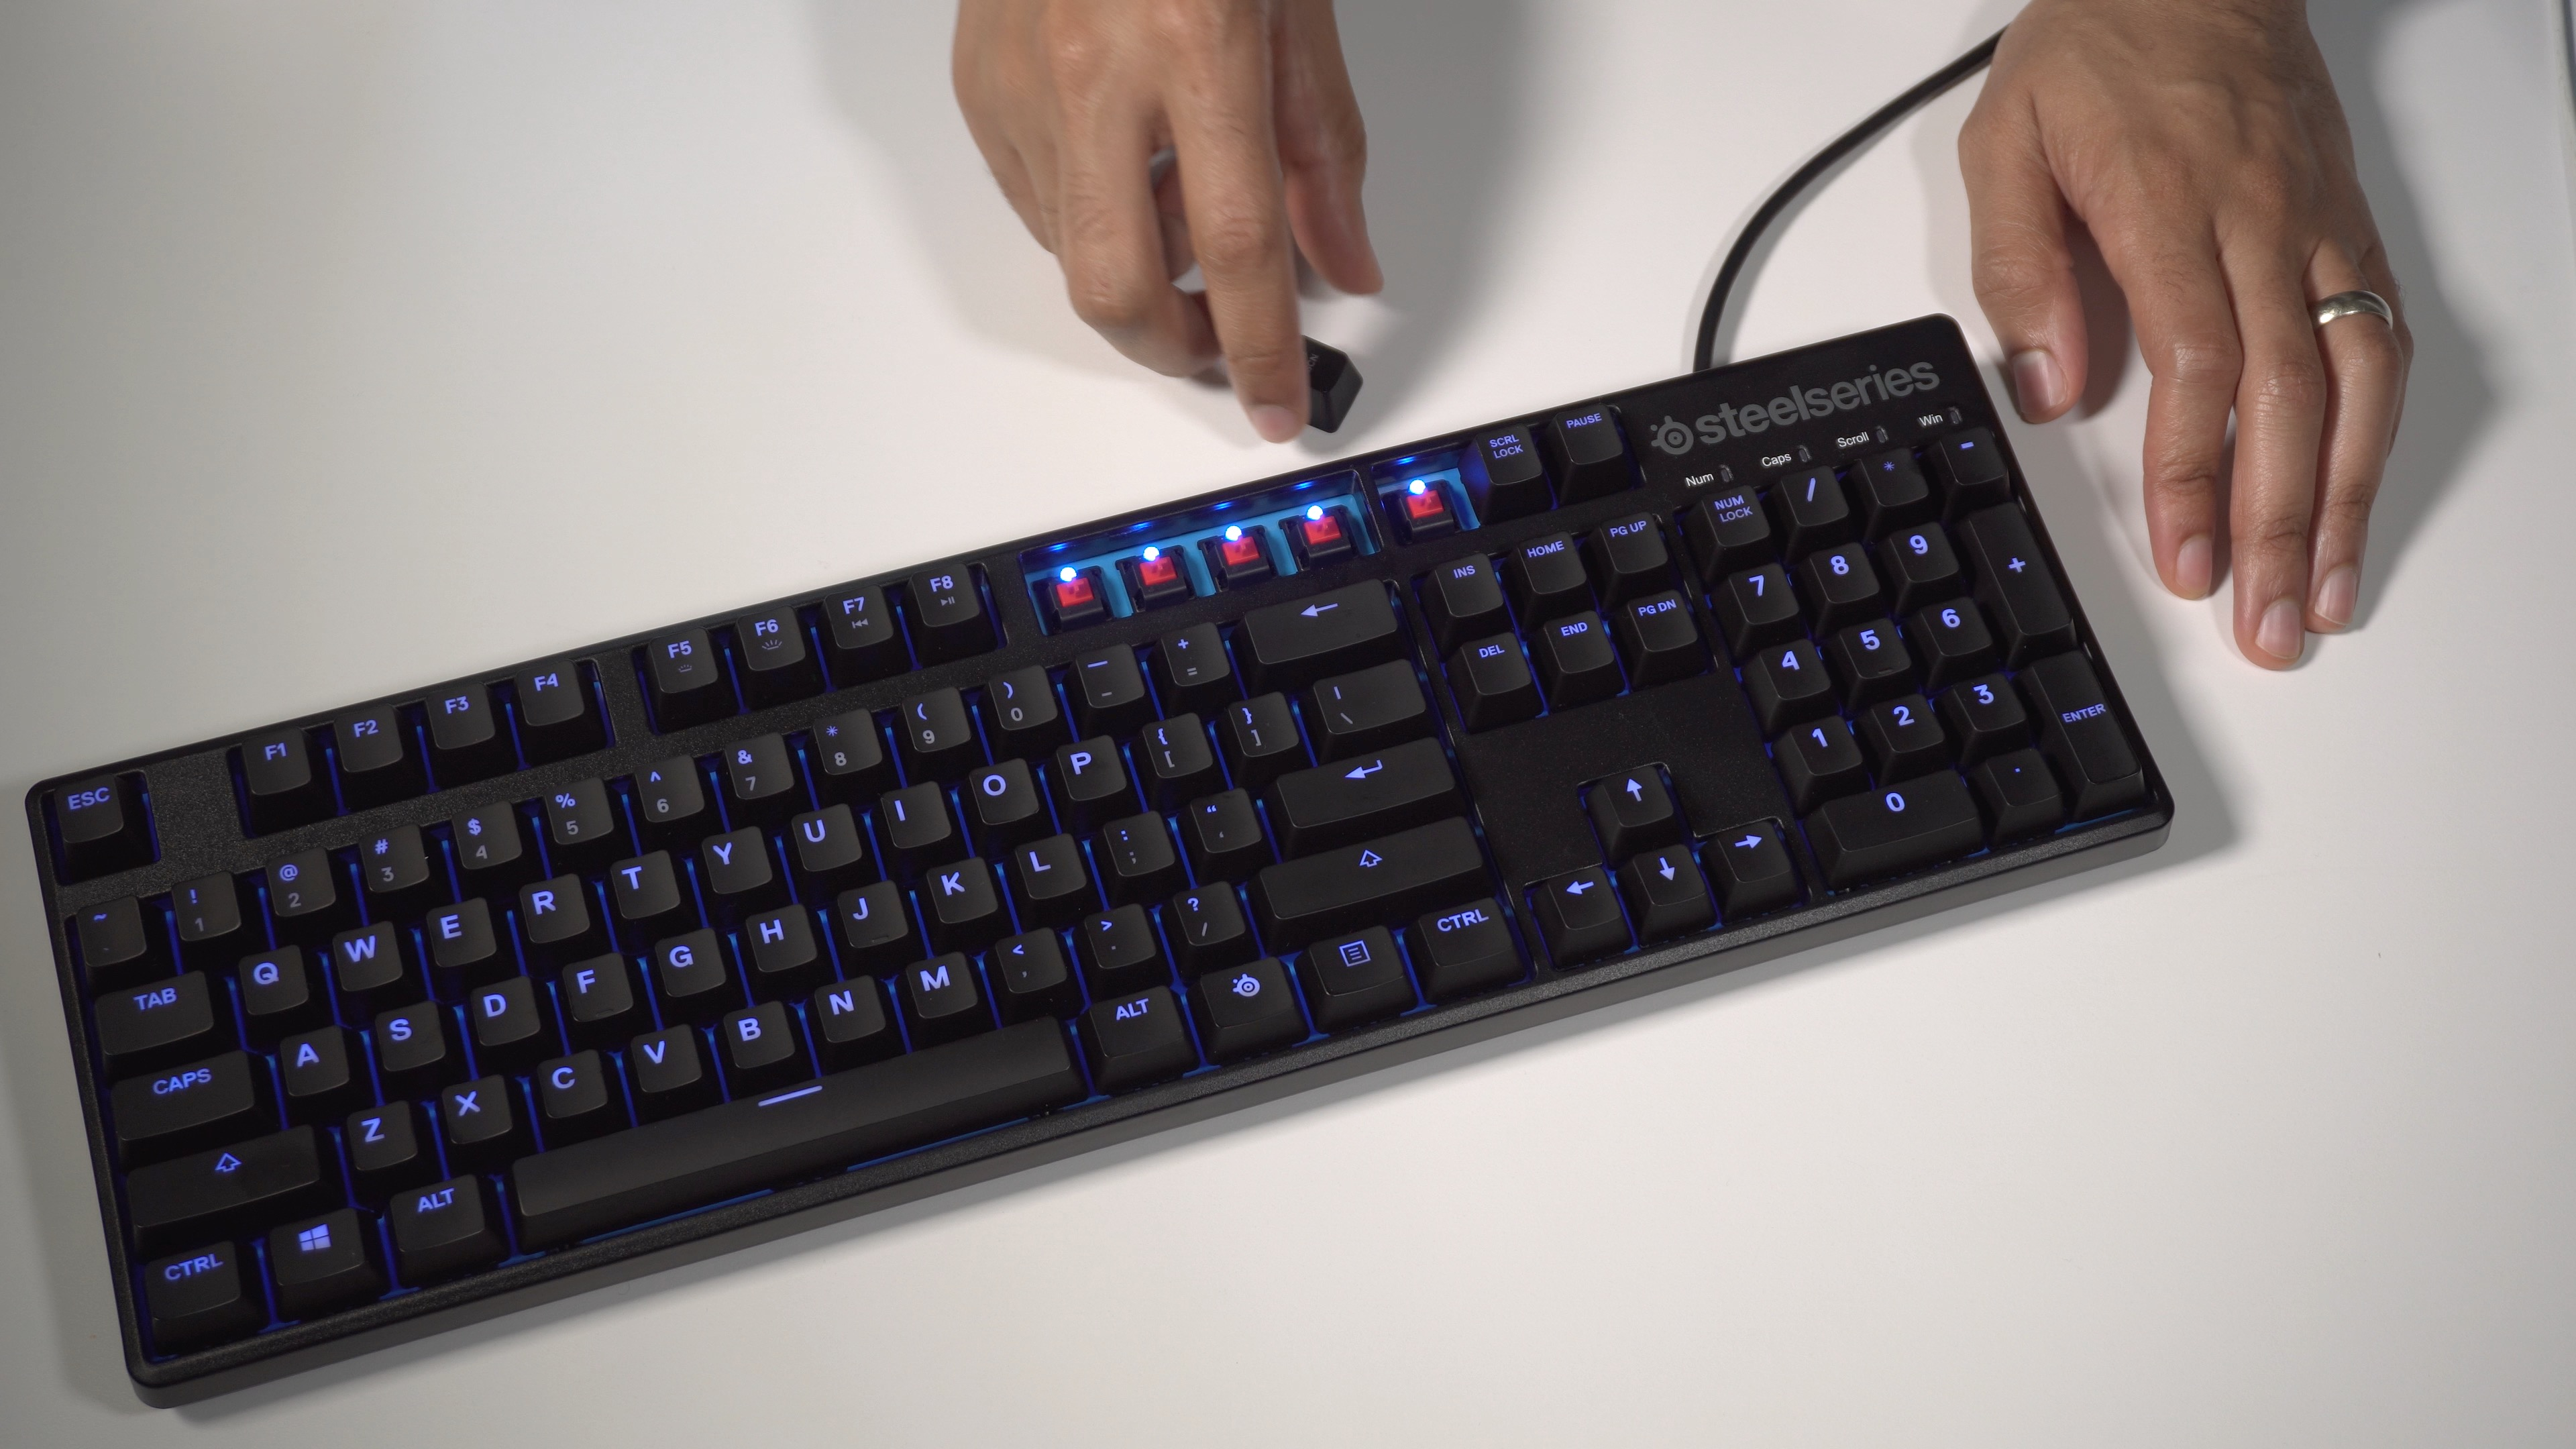 d4af27e2d64 The SteelSeries Apex M500 is a lean mechanical gaming keyboard with Cherry  MX Red switches [Video]